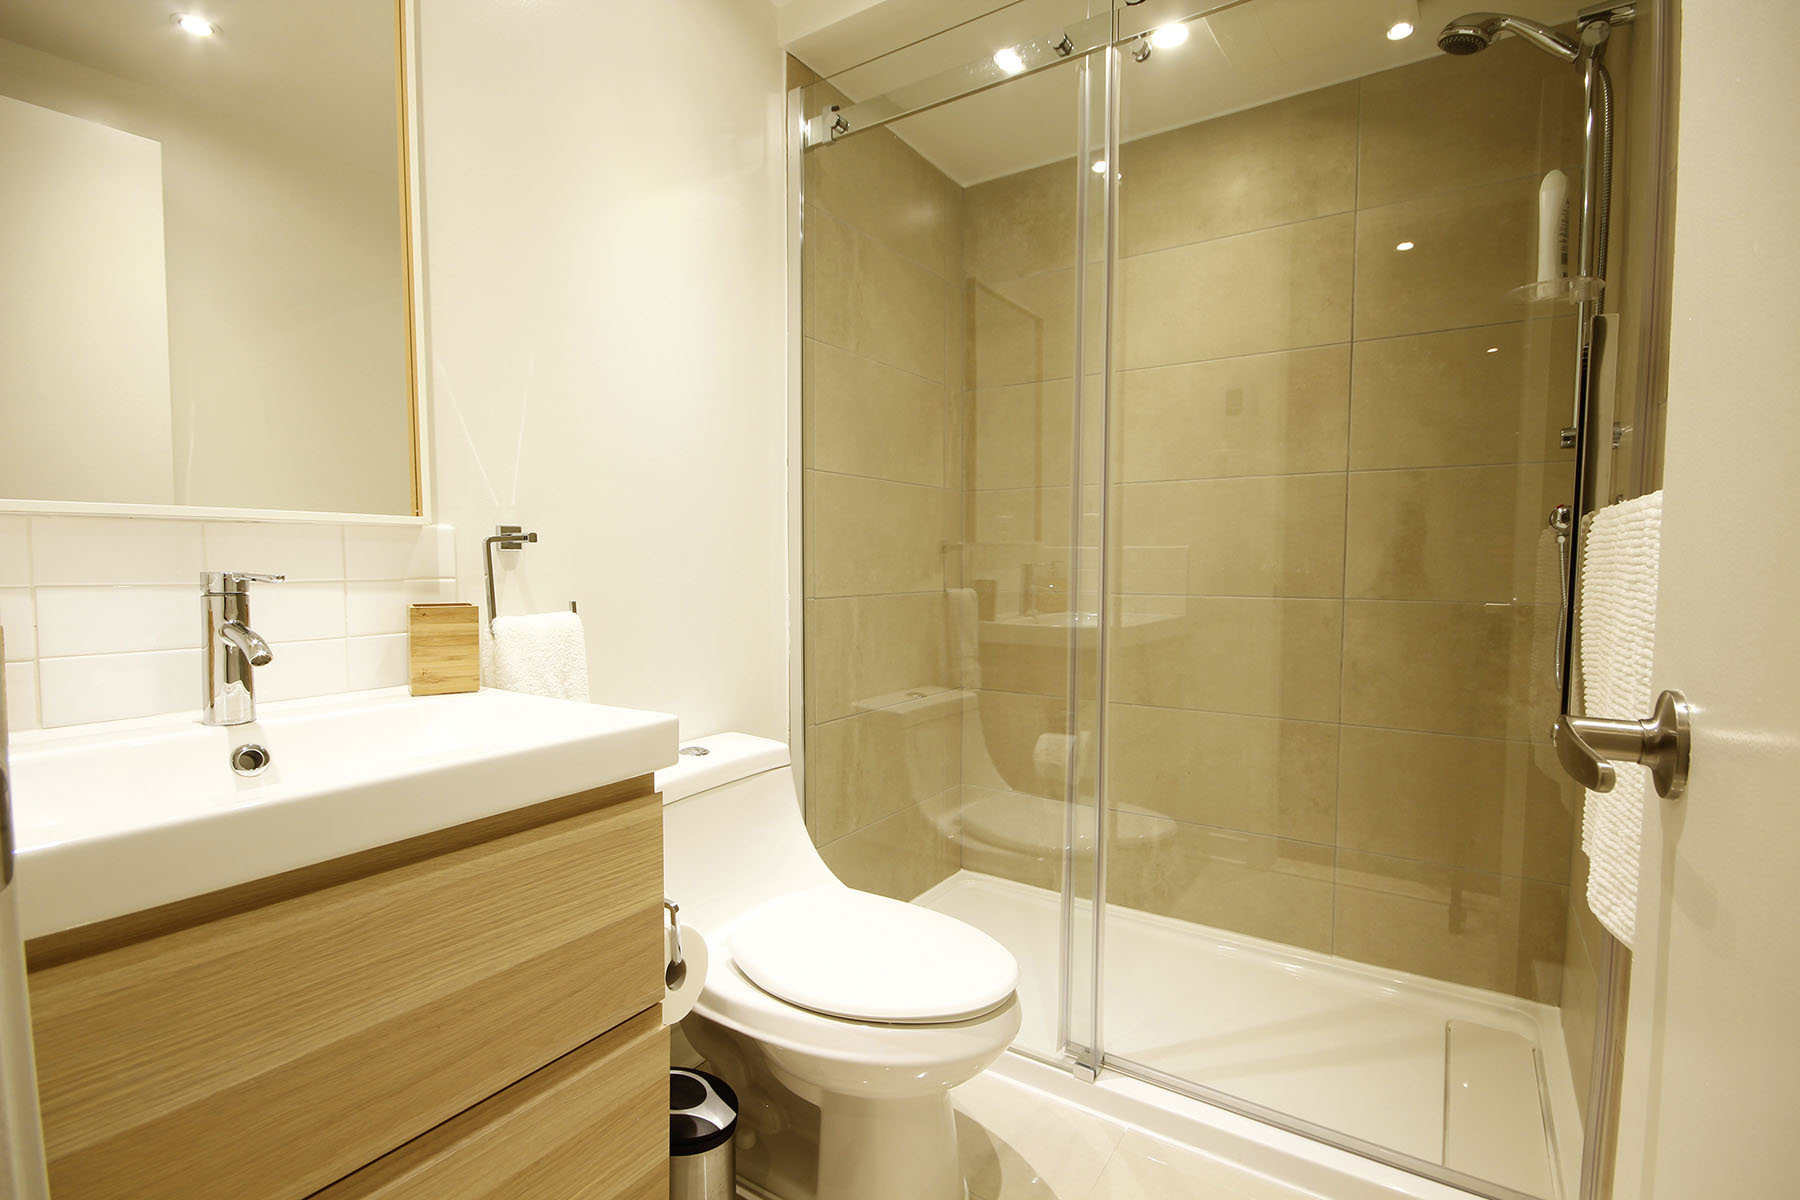 Bathroom Renovation in the west island of montreal, home renovated in Beaconsfield and ile-bizard.